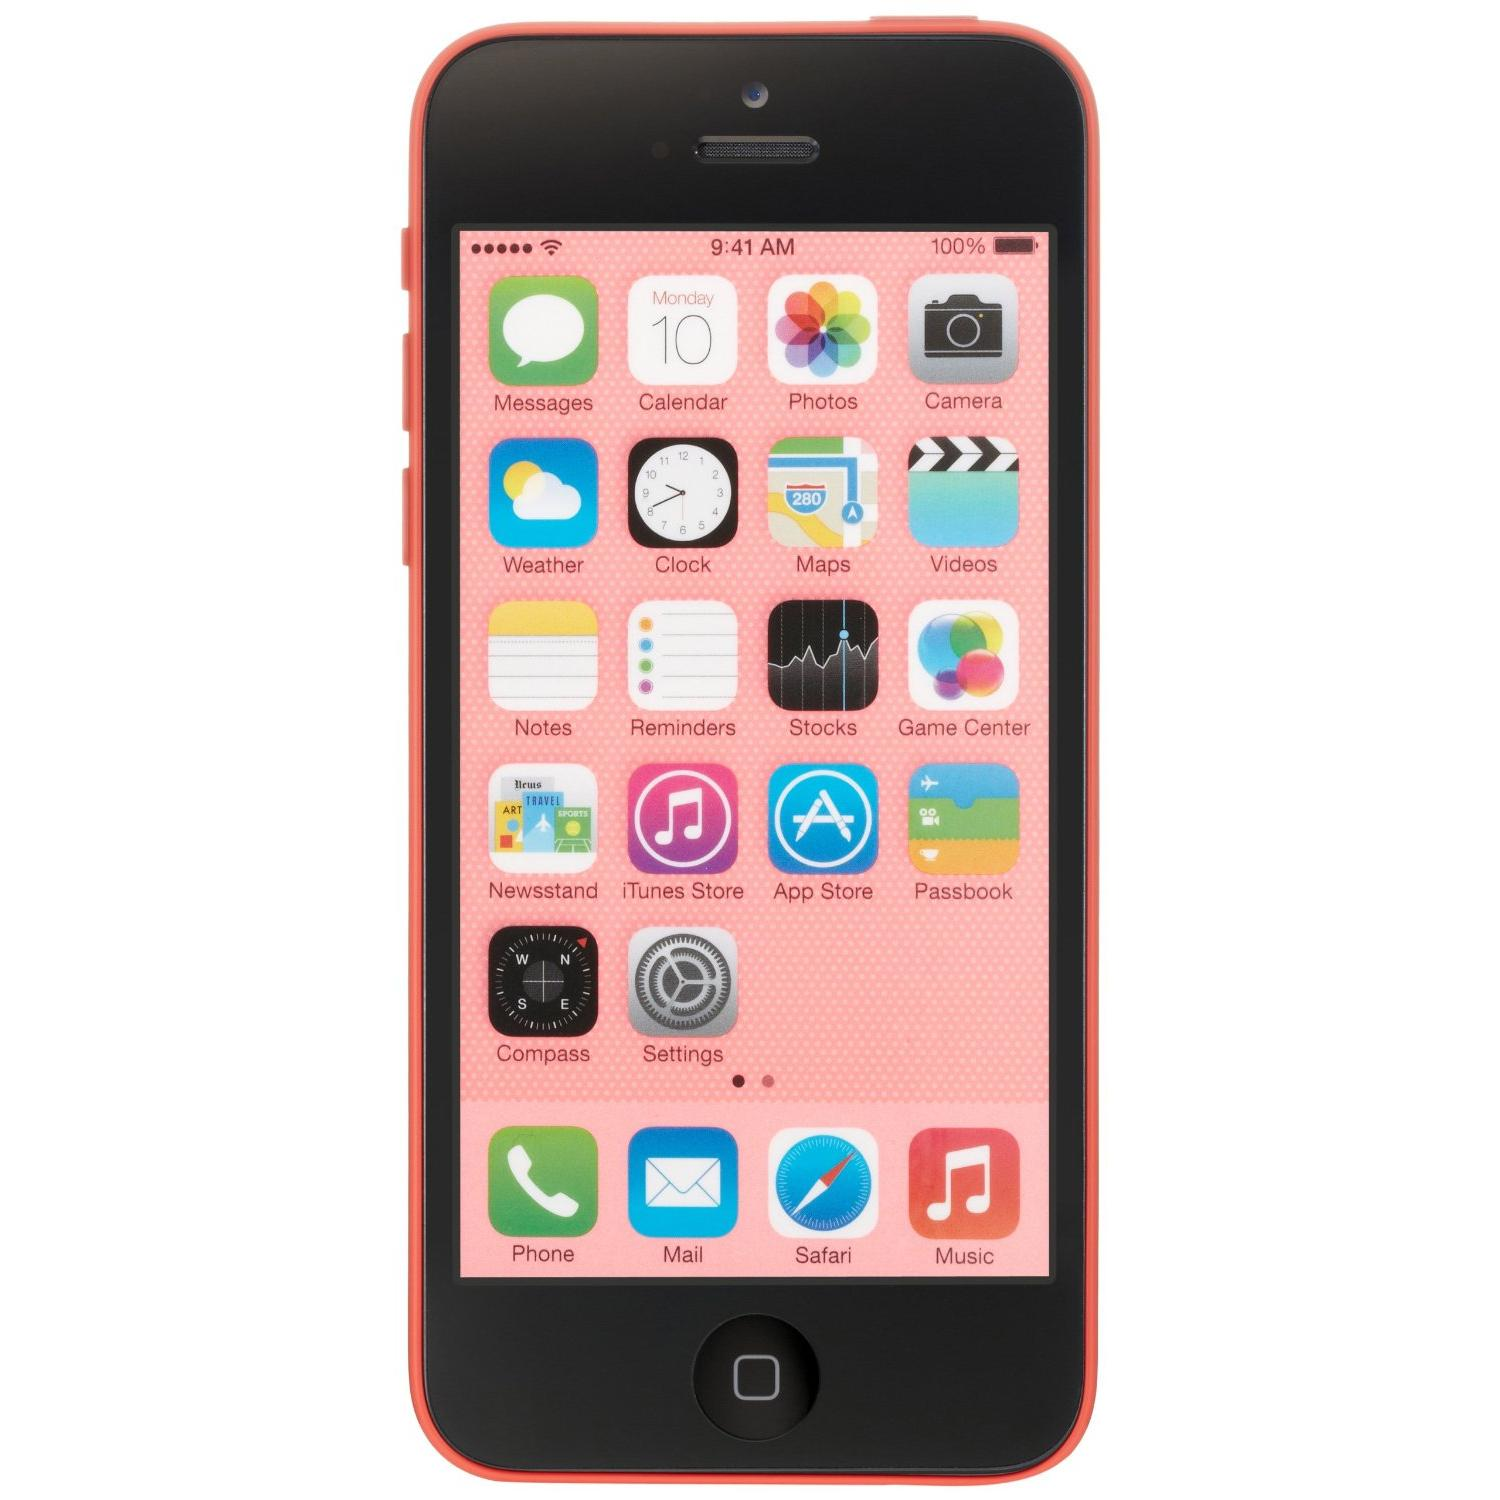 Phone House Iphone 5 Libre Iphone 5c 8 Gb Rosa Libre Reacondicionado Back Market